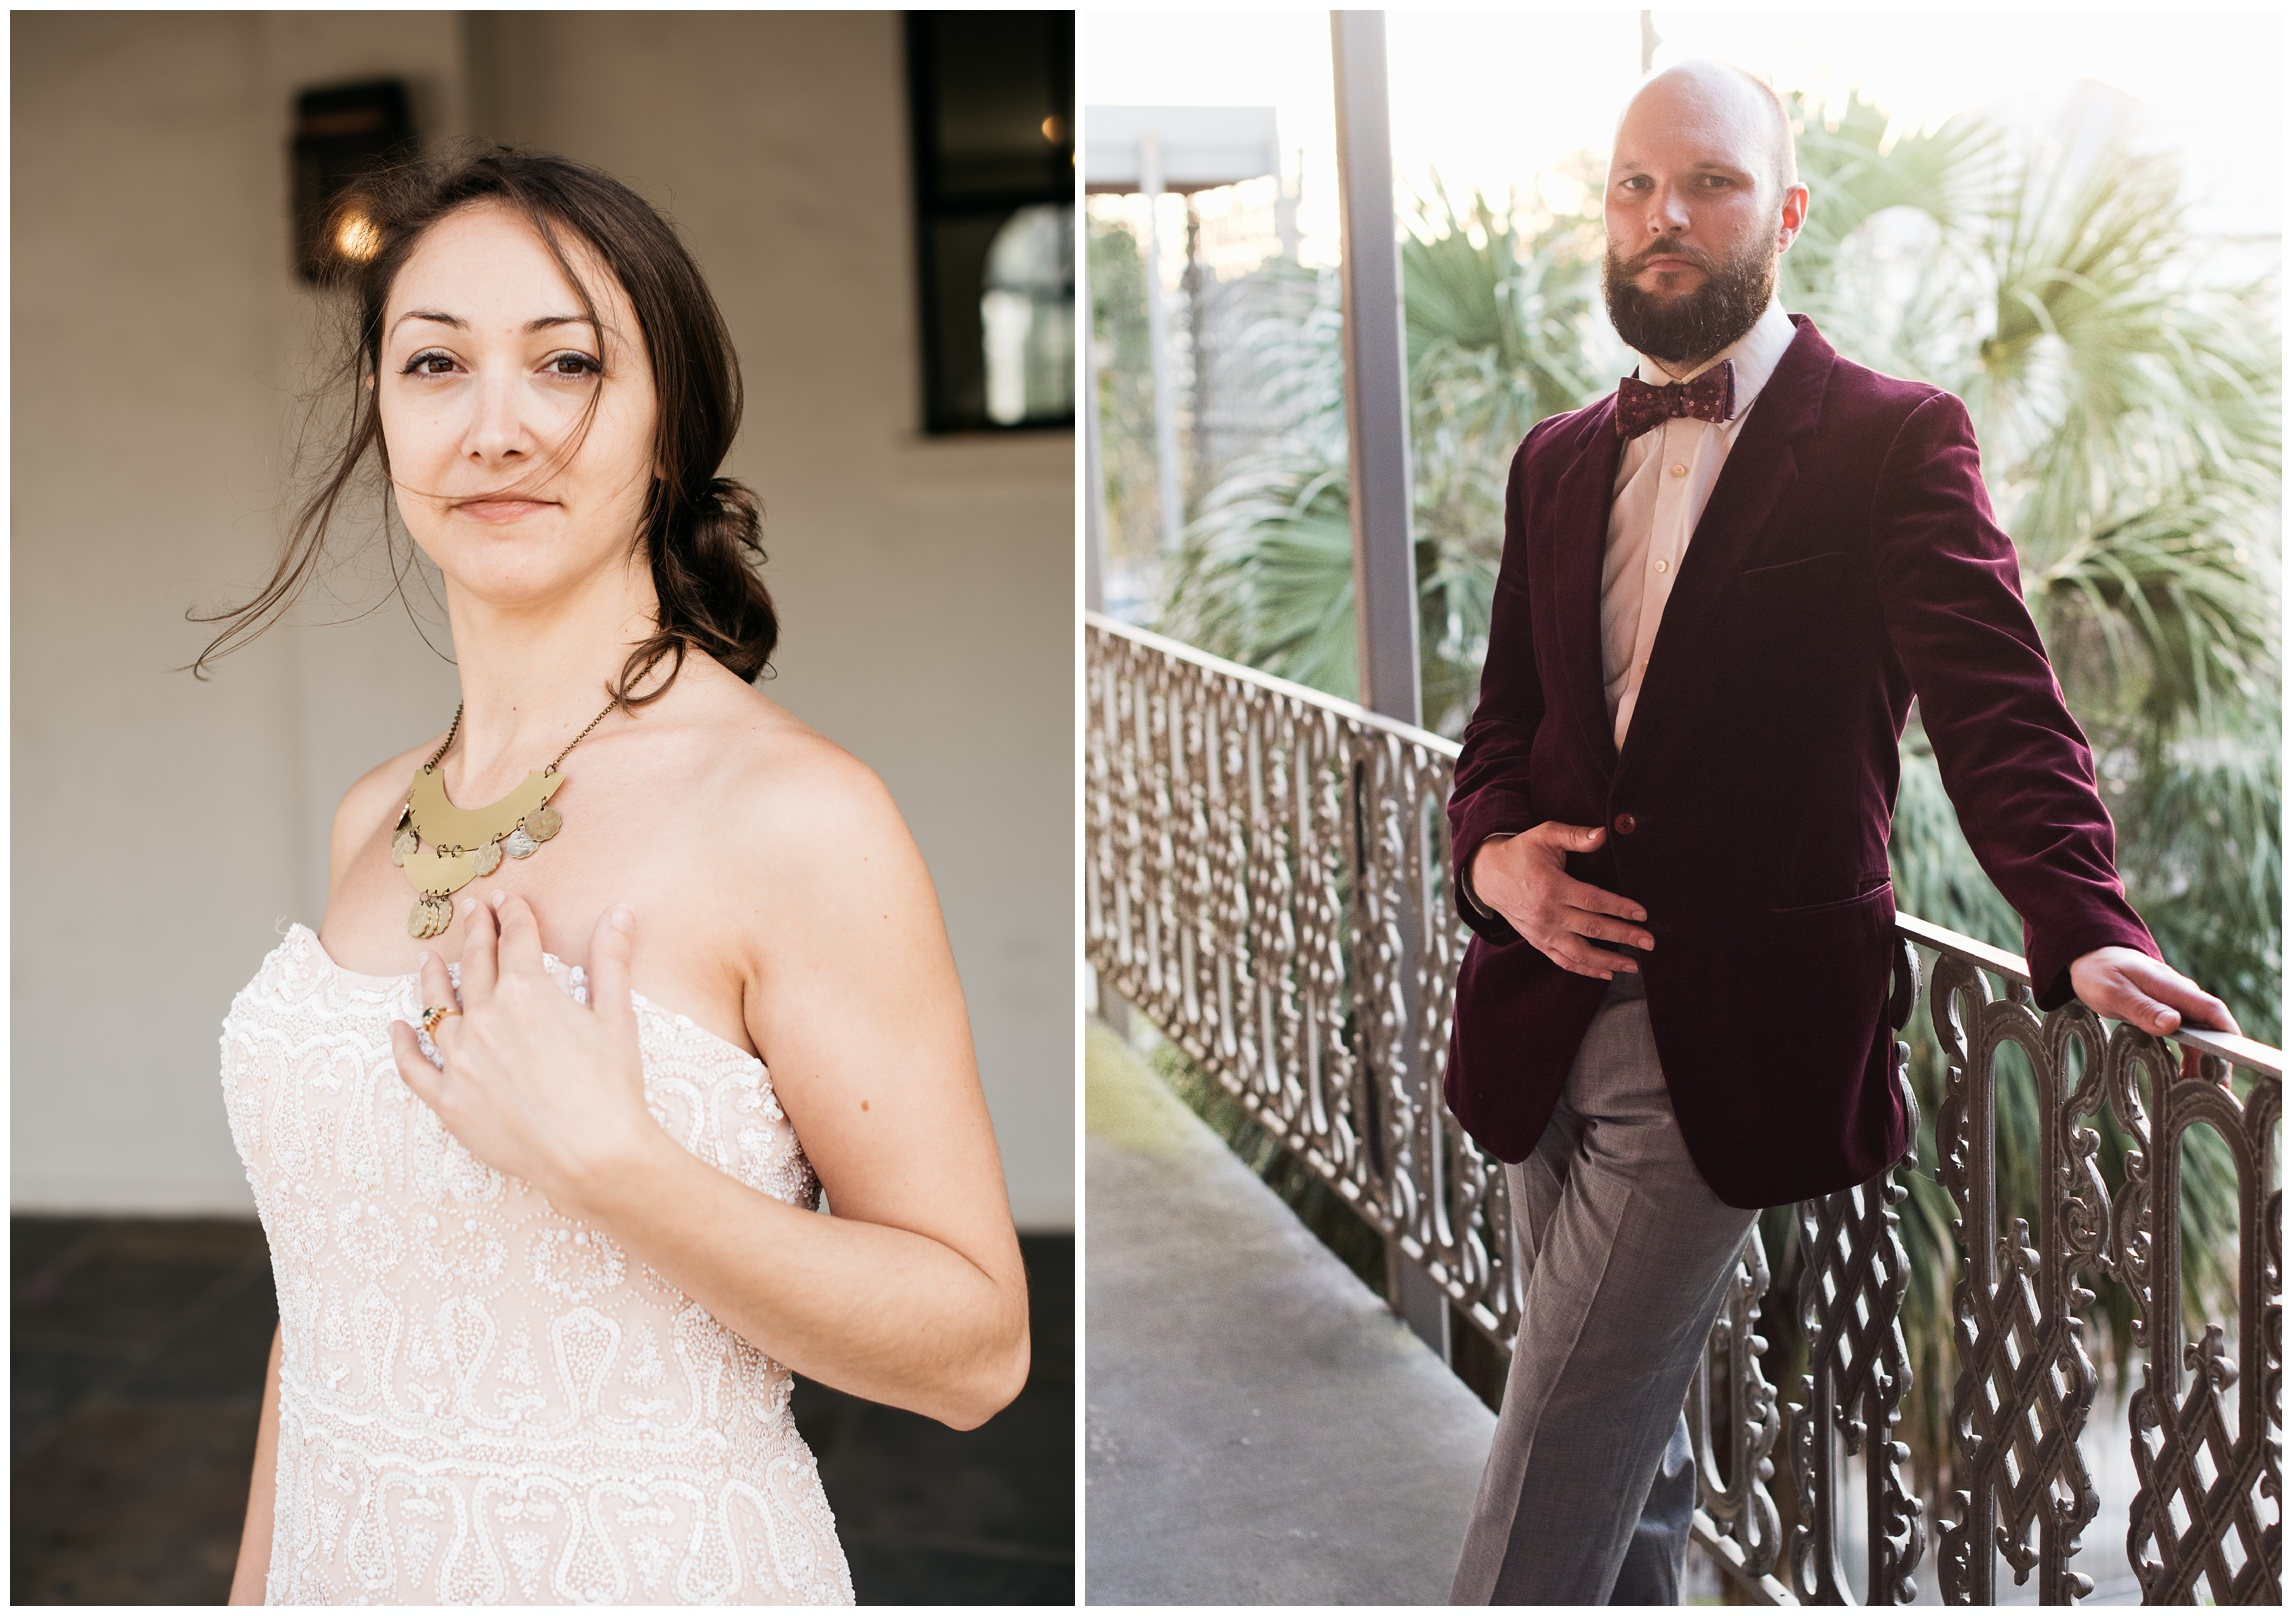 Magalie and Bryan. Necklace by Brynna Mollahan of Lunar Fringe Outpost. Bow tie by Knotty Tie. Film portraits by Sonja Salzburg of Sonja K Photography.